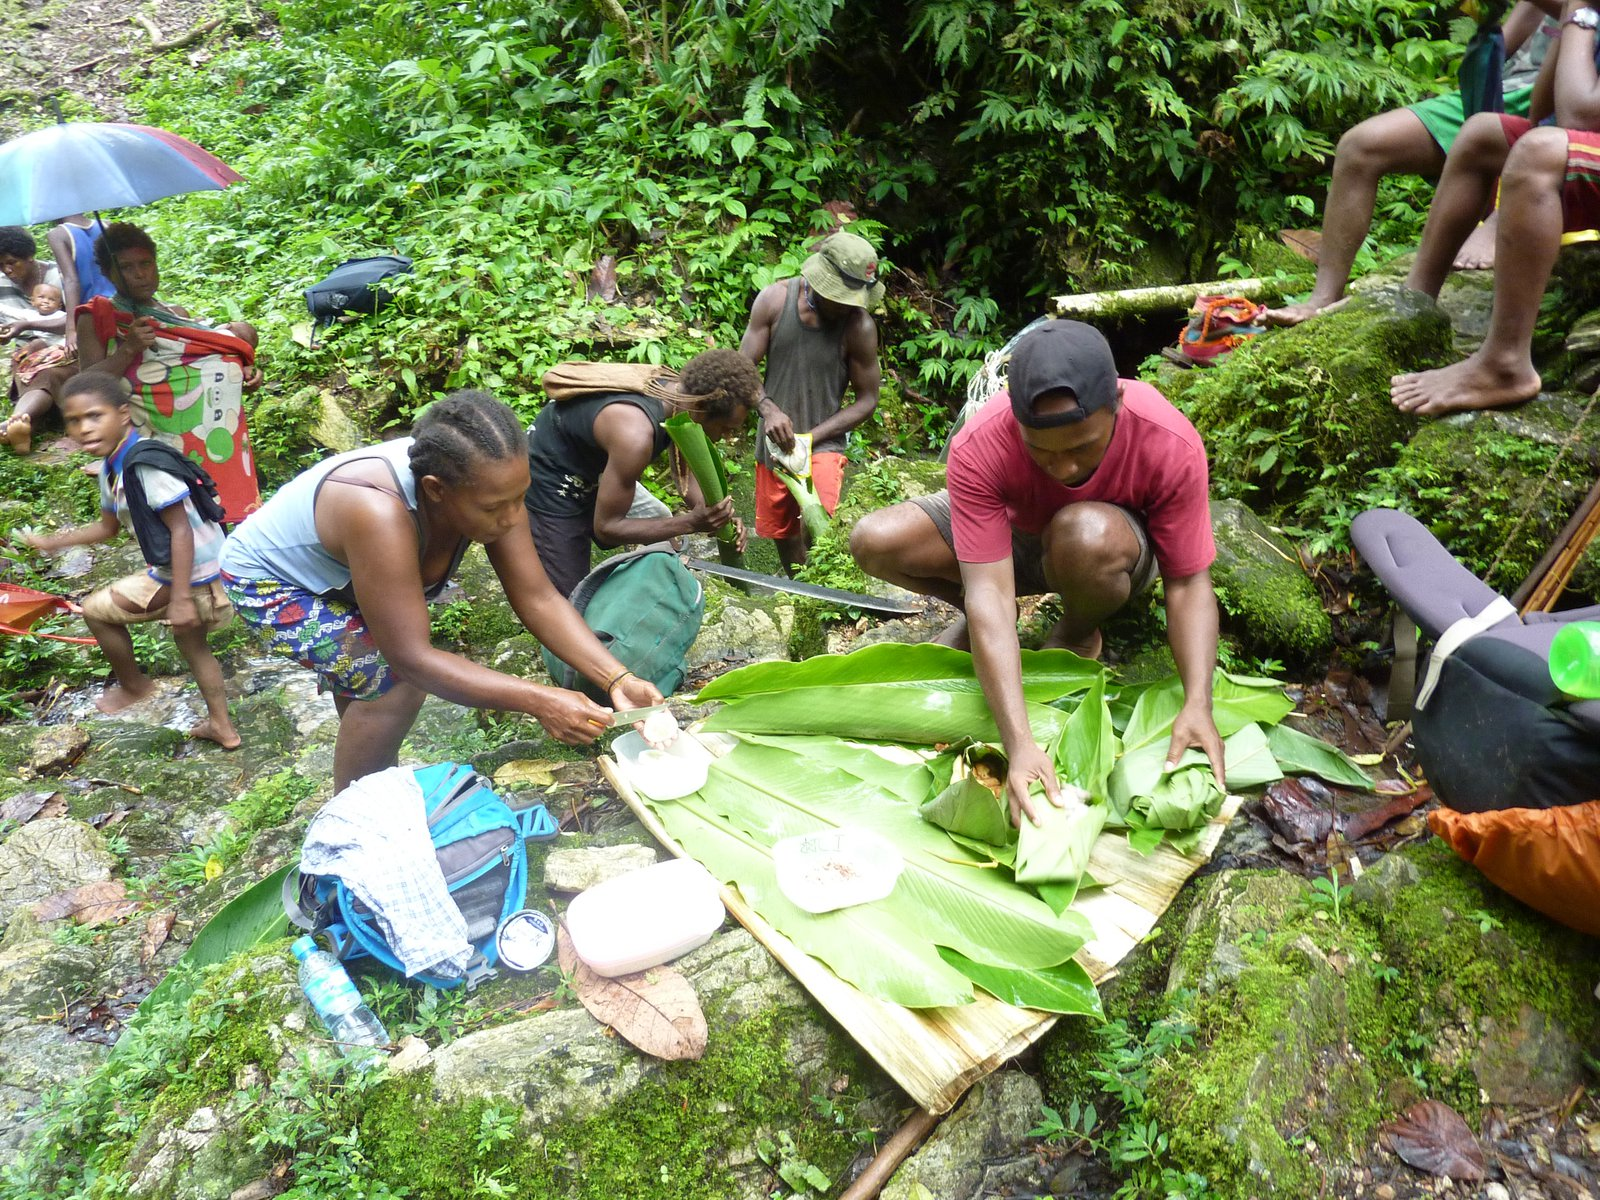 Kwaio community preparing a meal with banana leaves, Malaita.